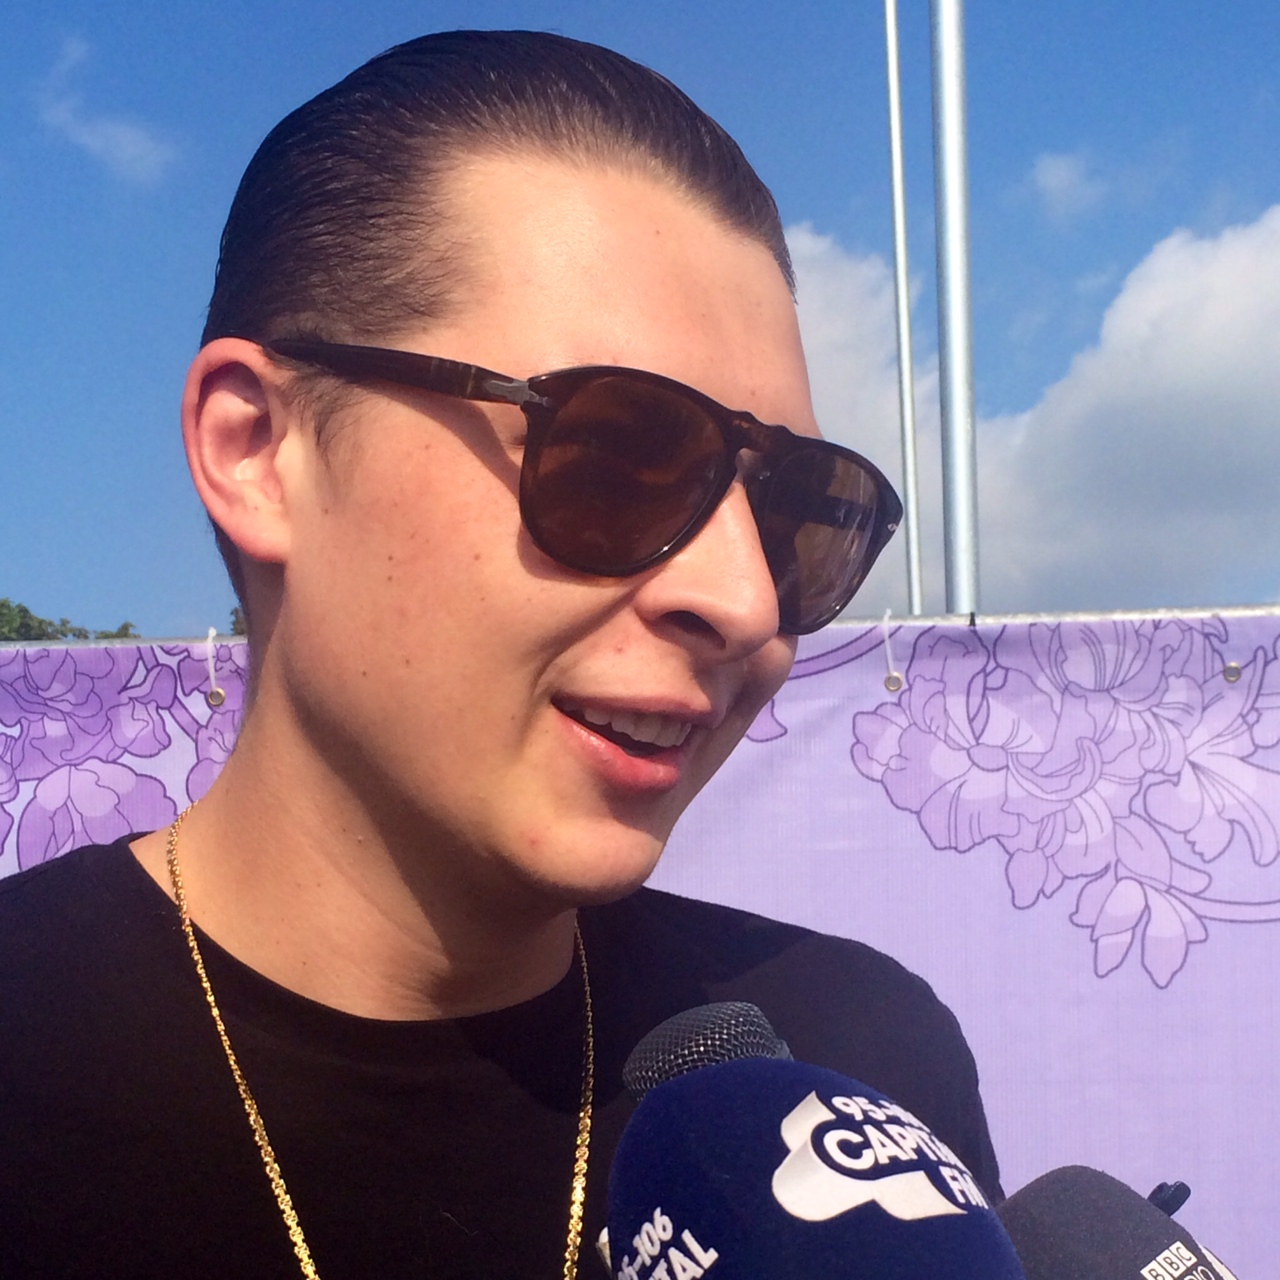 John Newman at the Isle of Wight Festival 2014